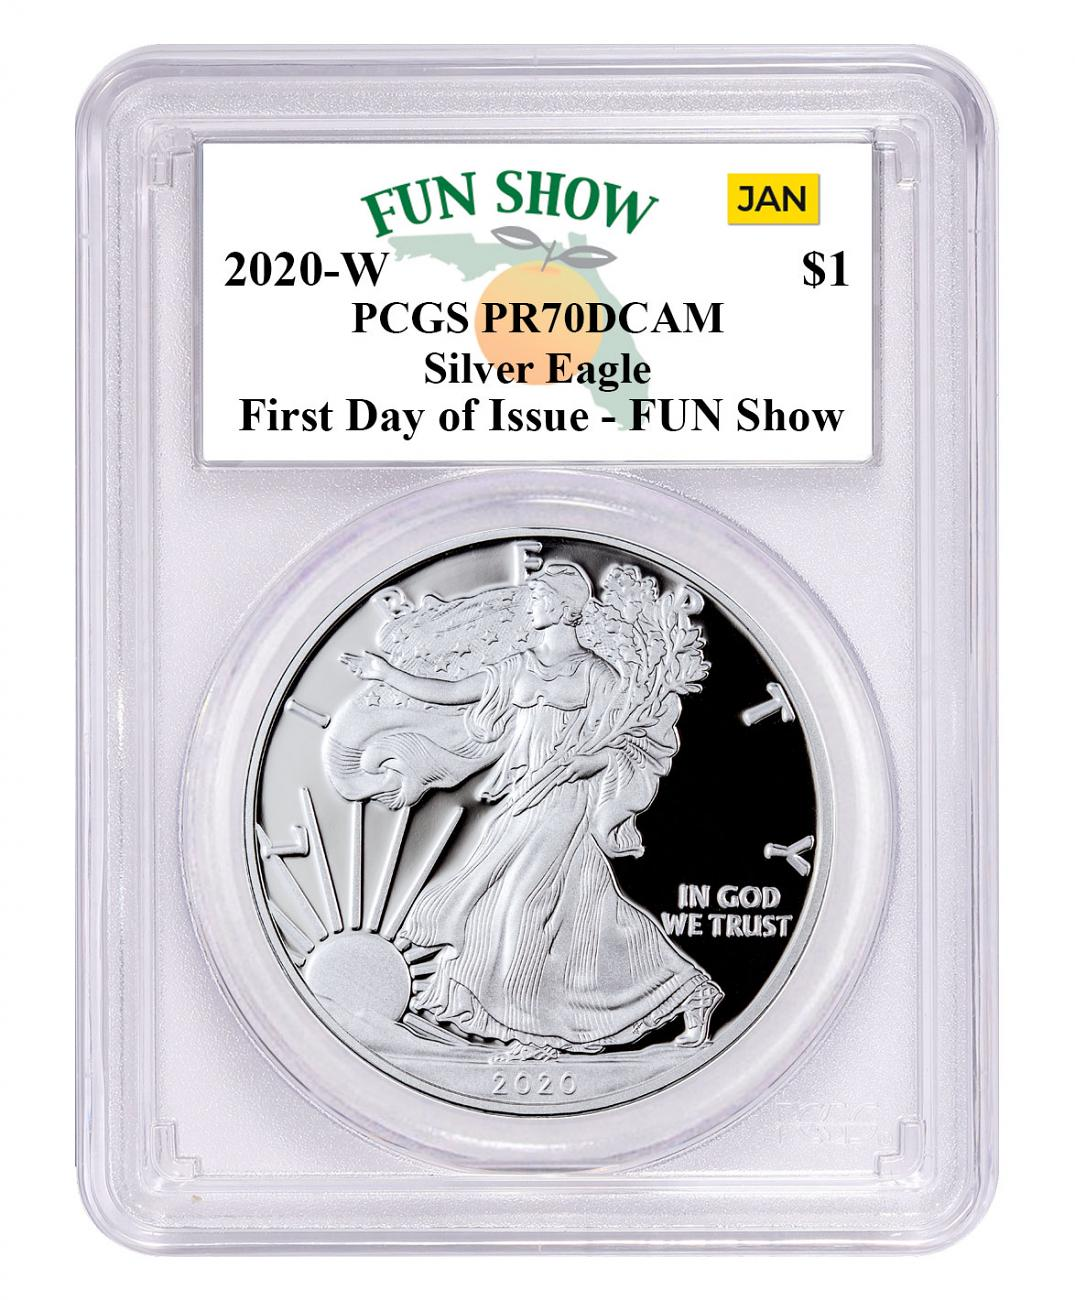 2020-W 1 oz Proof Silver American Eagle $1 Coin PCGS PR70 DCAM First Day - Fun Show